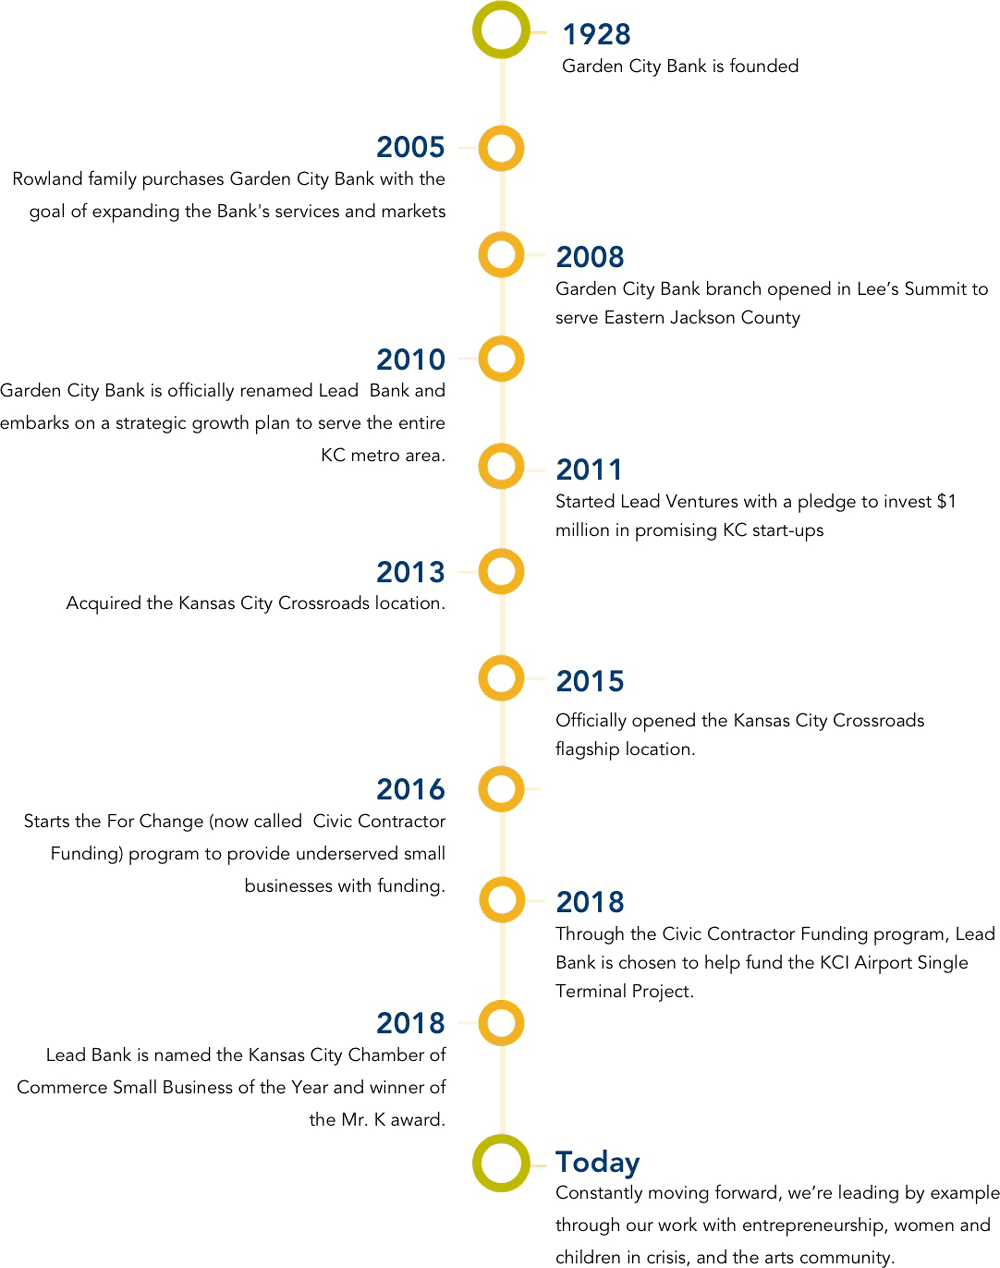 Lead Bank historic events timeline from 1928 to today